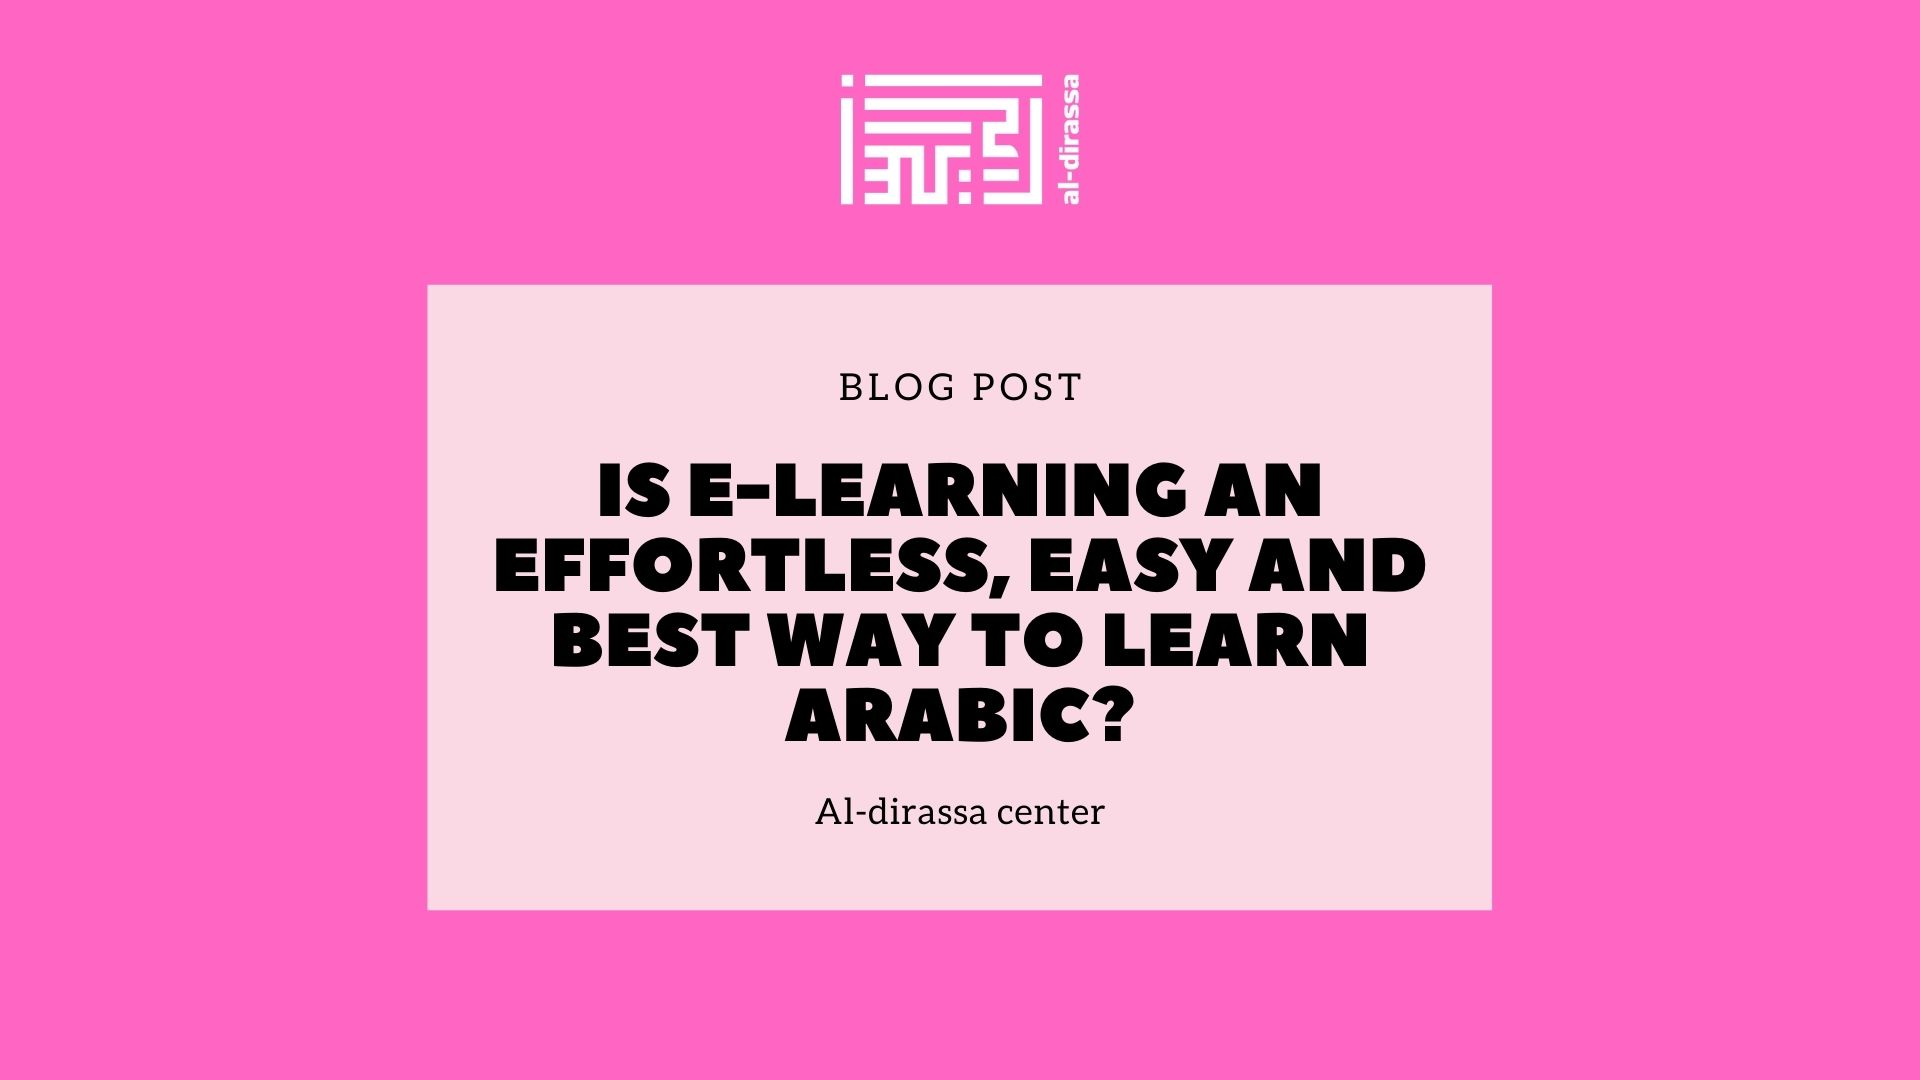 Is e-learning an effortless, easy and best way to learn Arabic